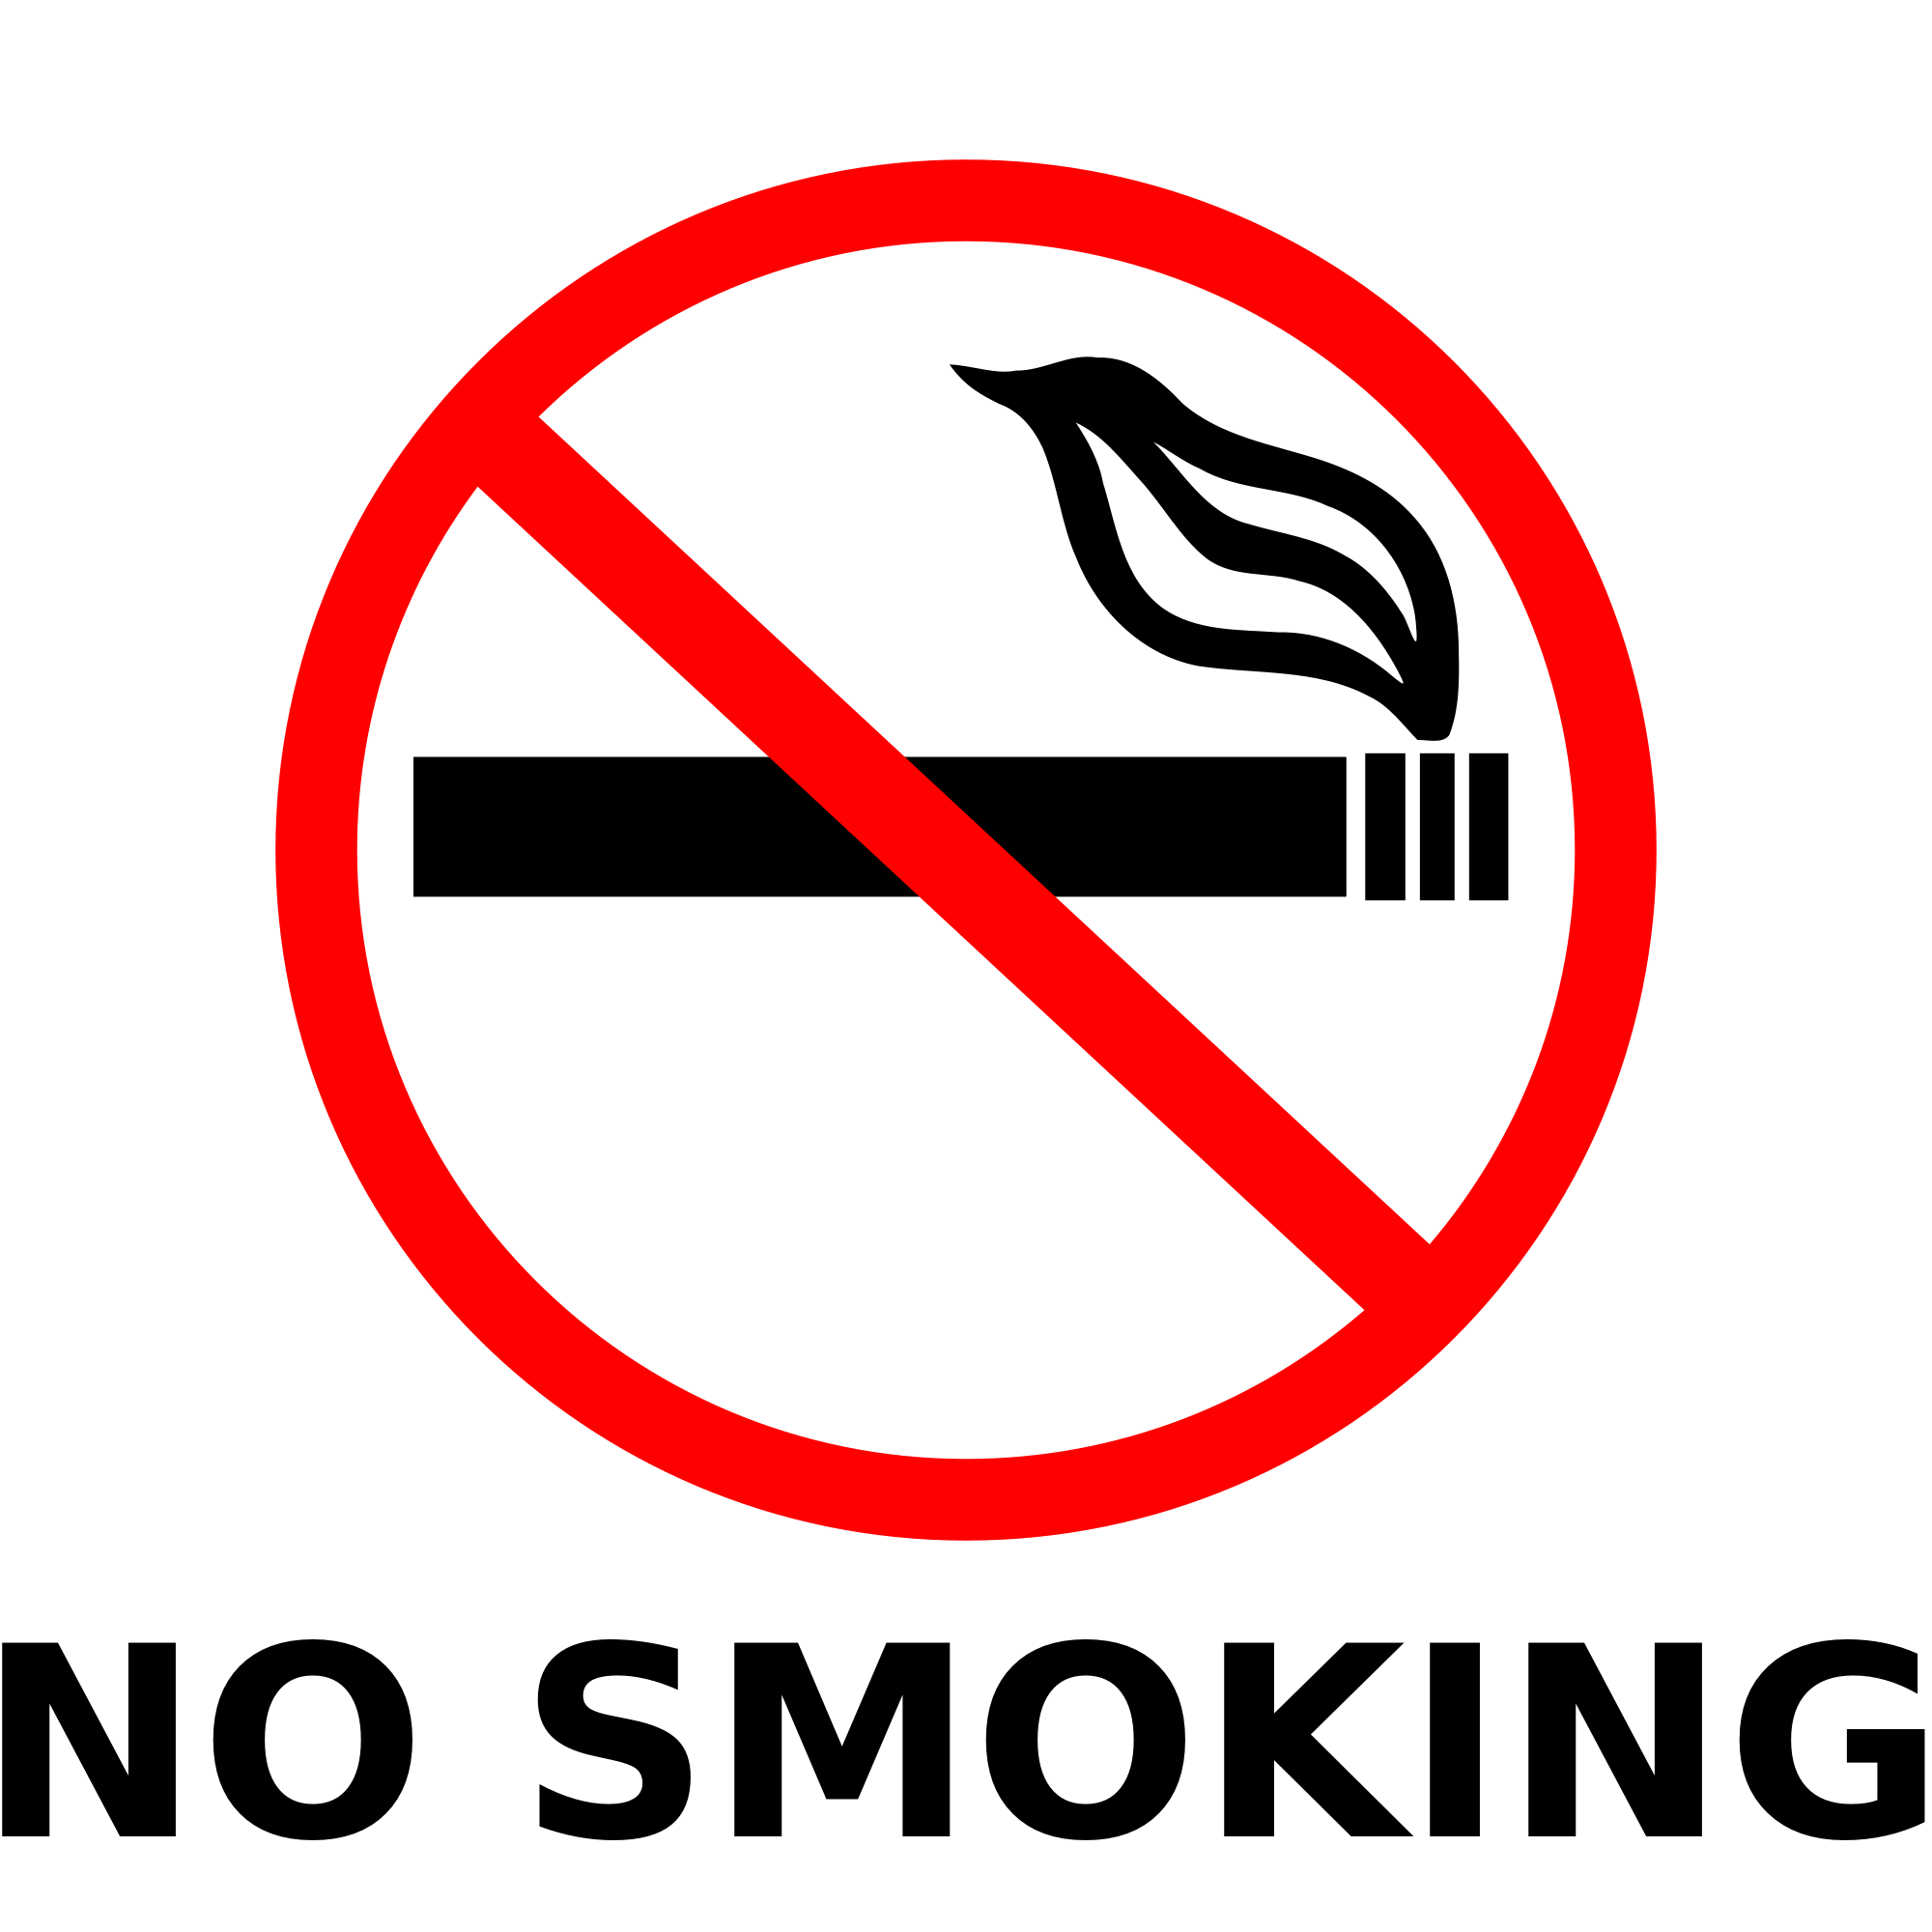 No Smoking Sign Clipart.